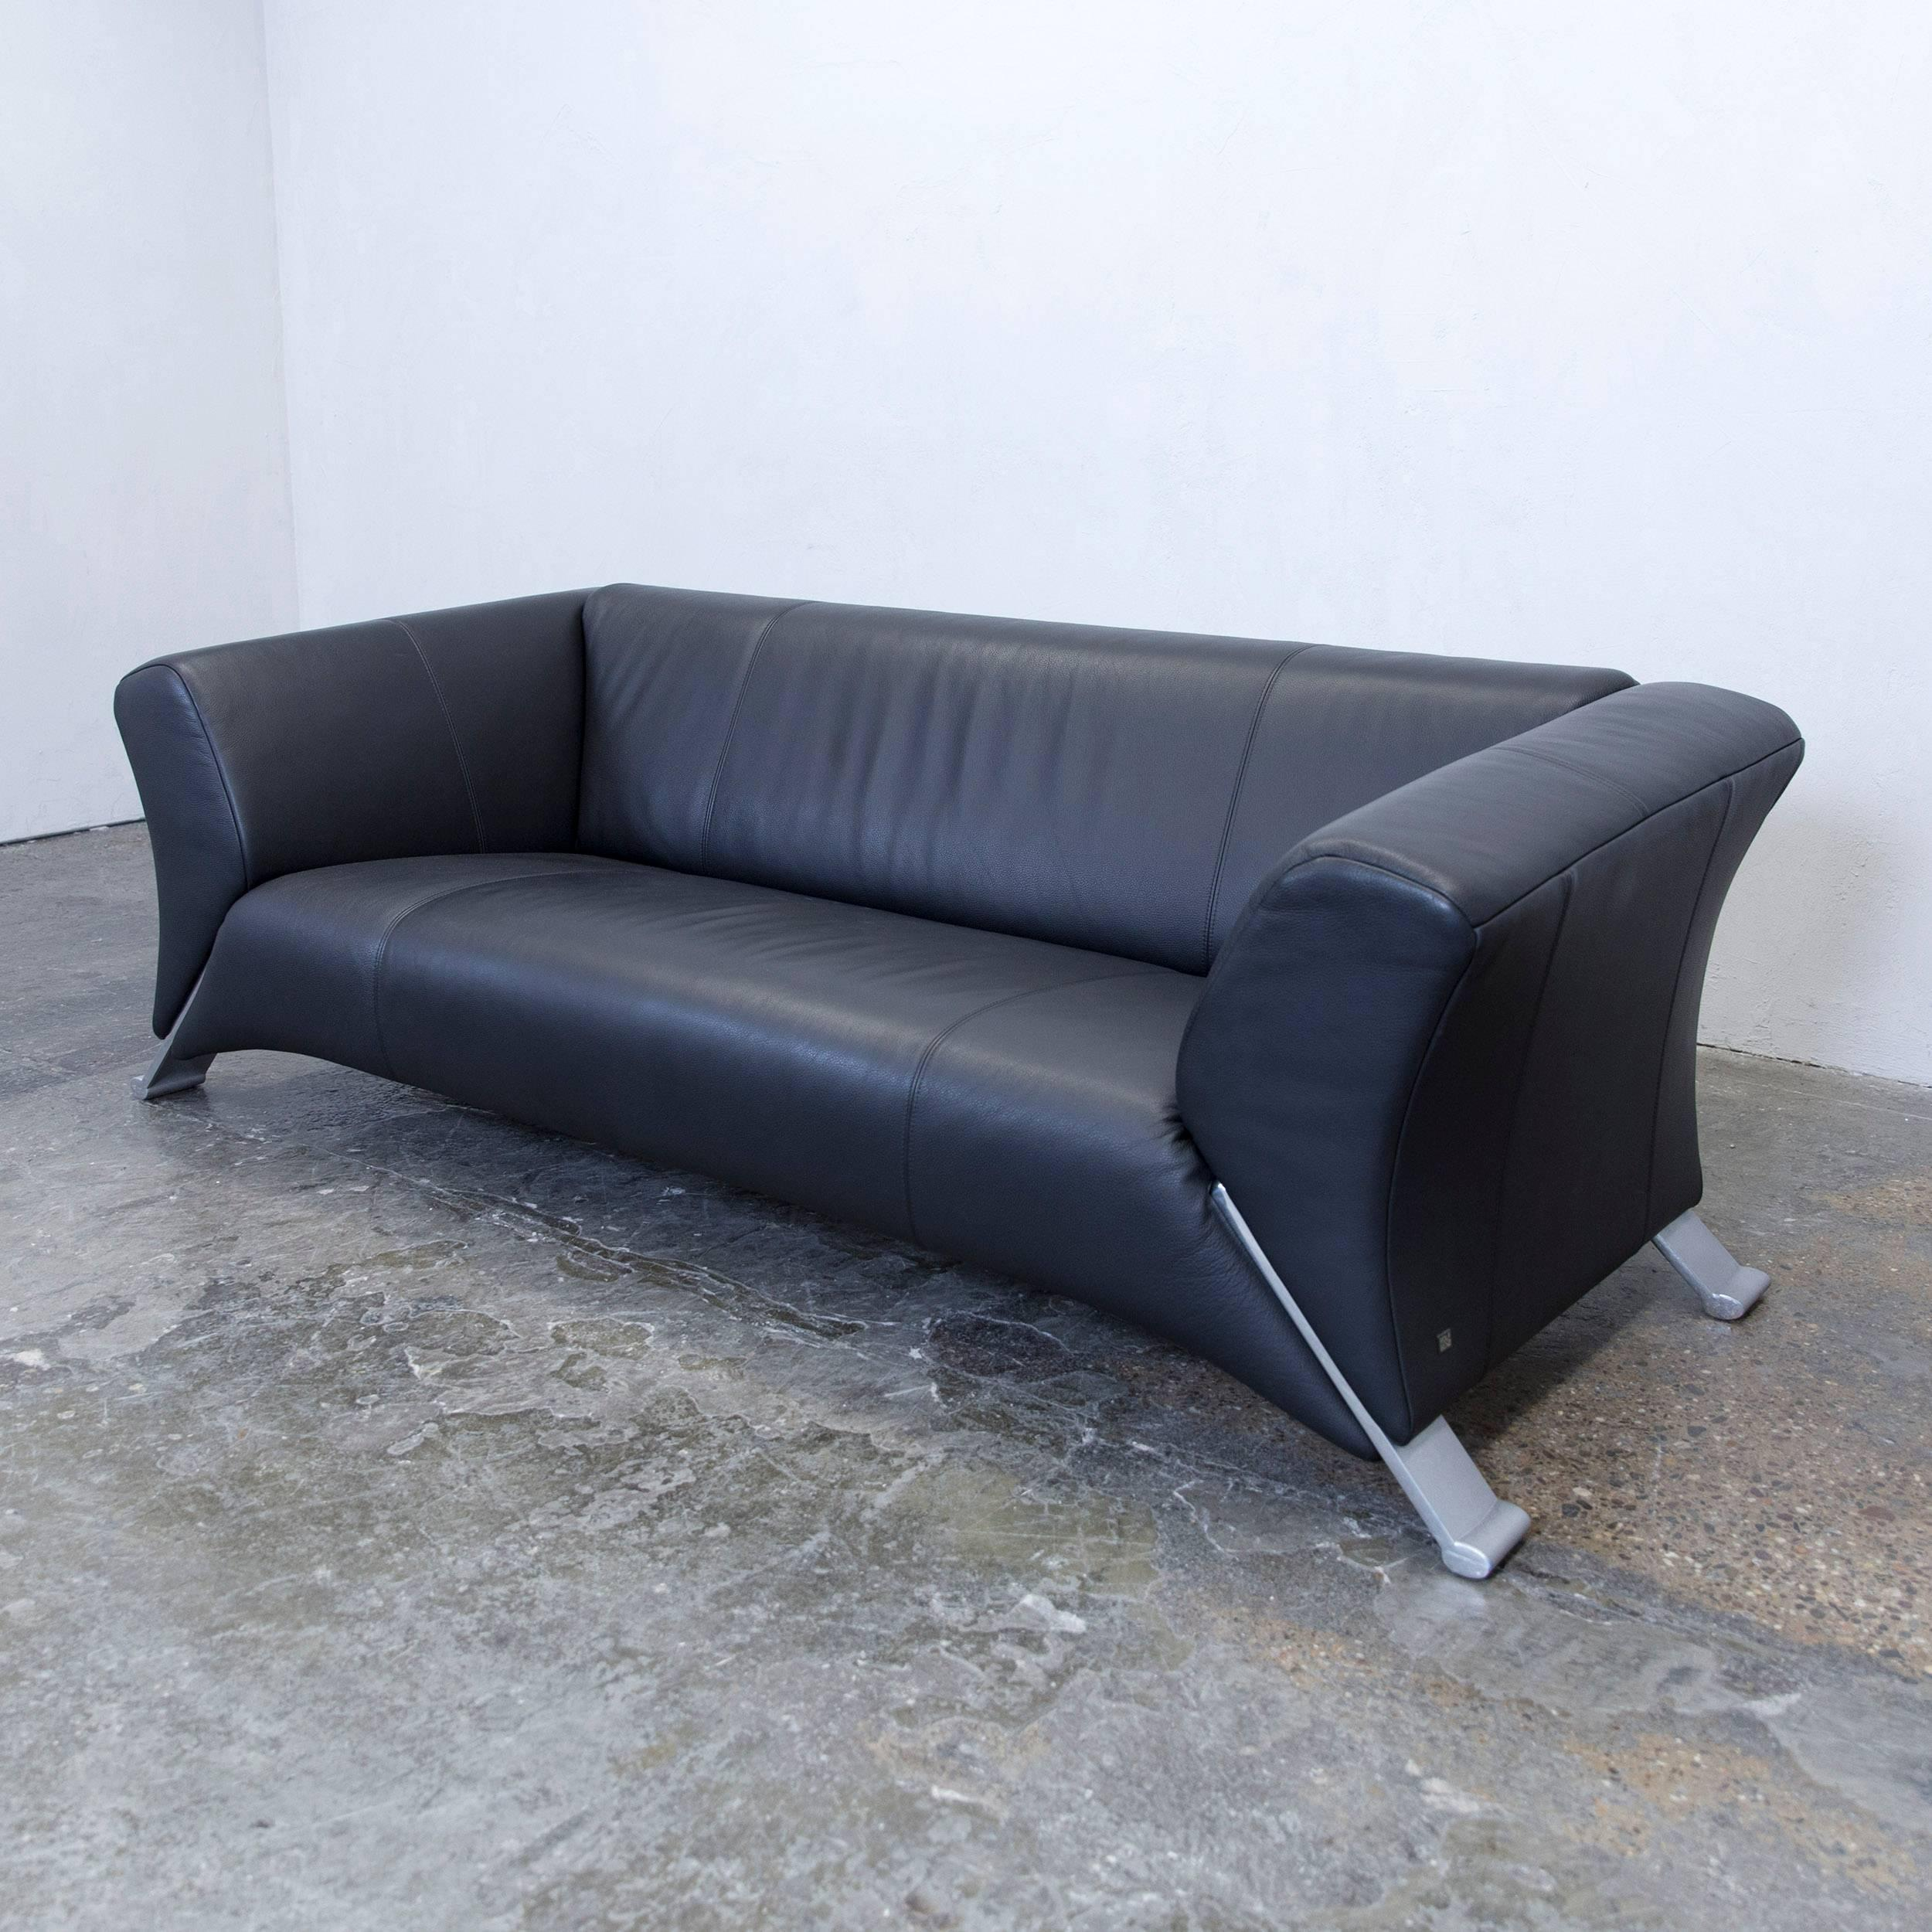 Leder Couch Sofa Aus Leder With Leder Couch Great